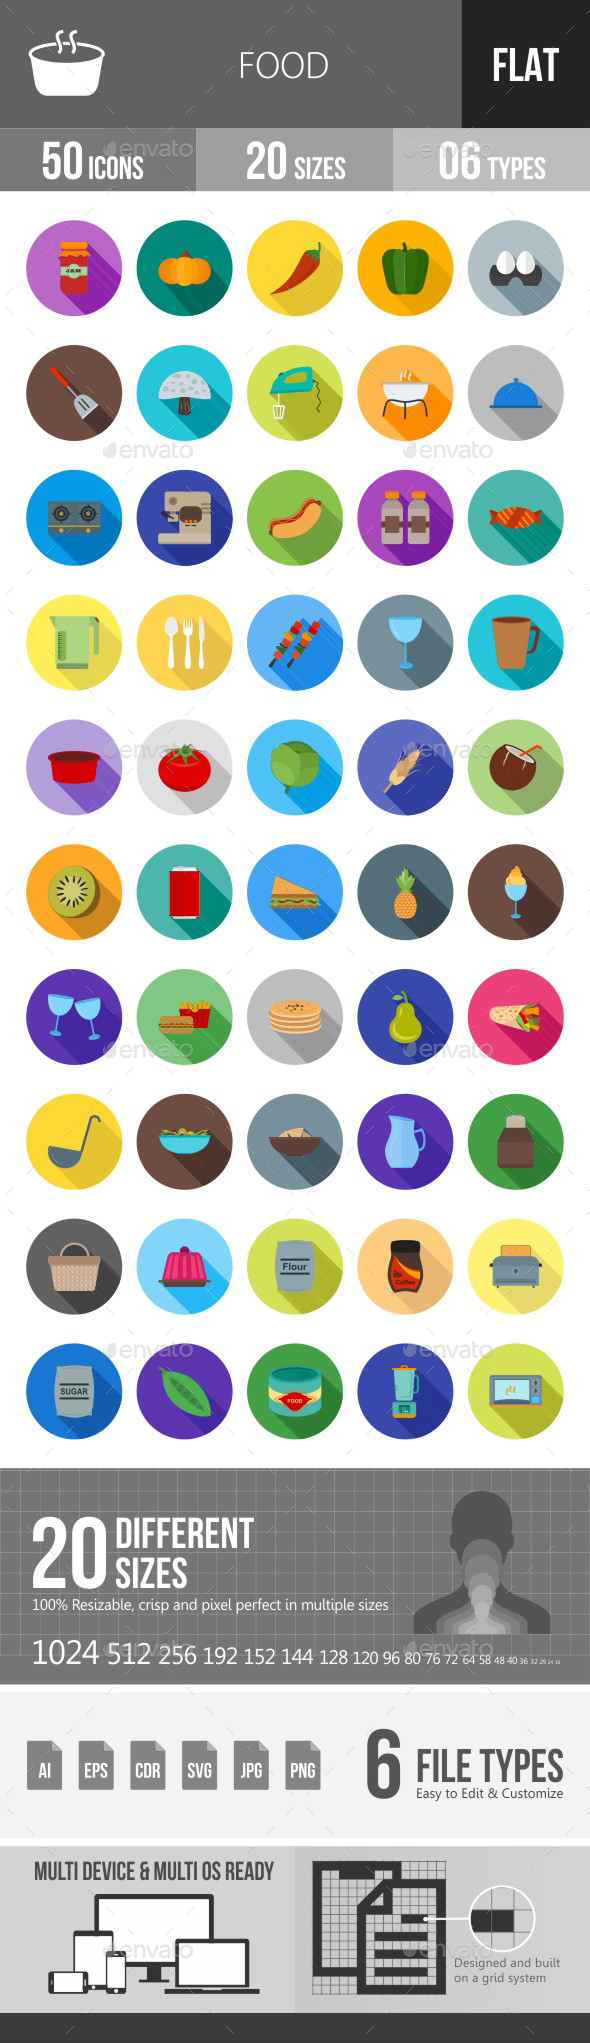 Food Flat Shadowed Icons - Icons